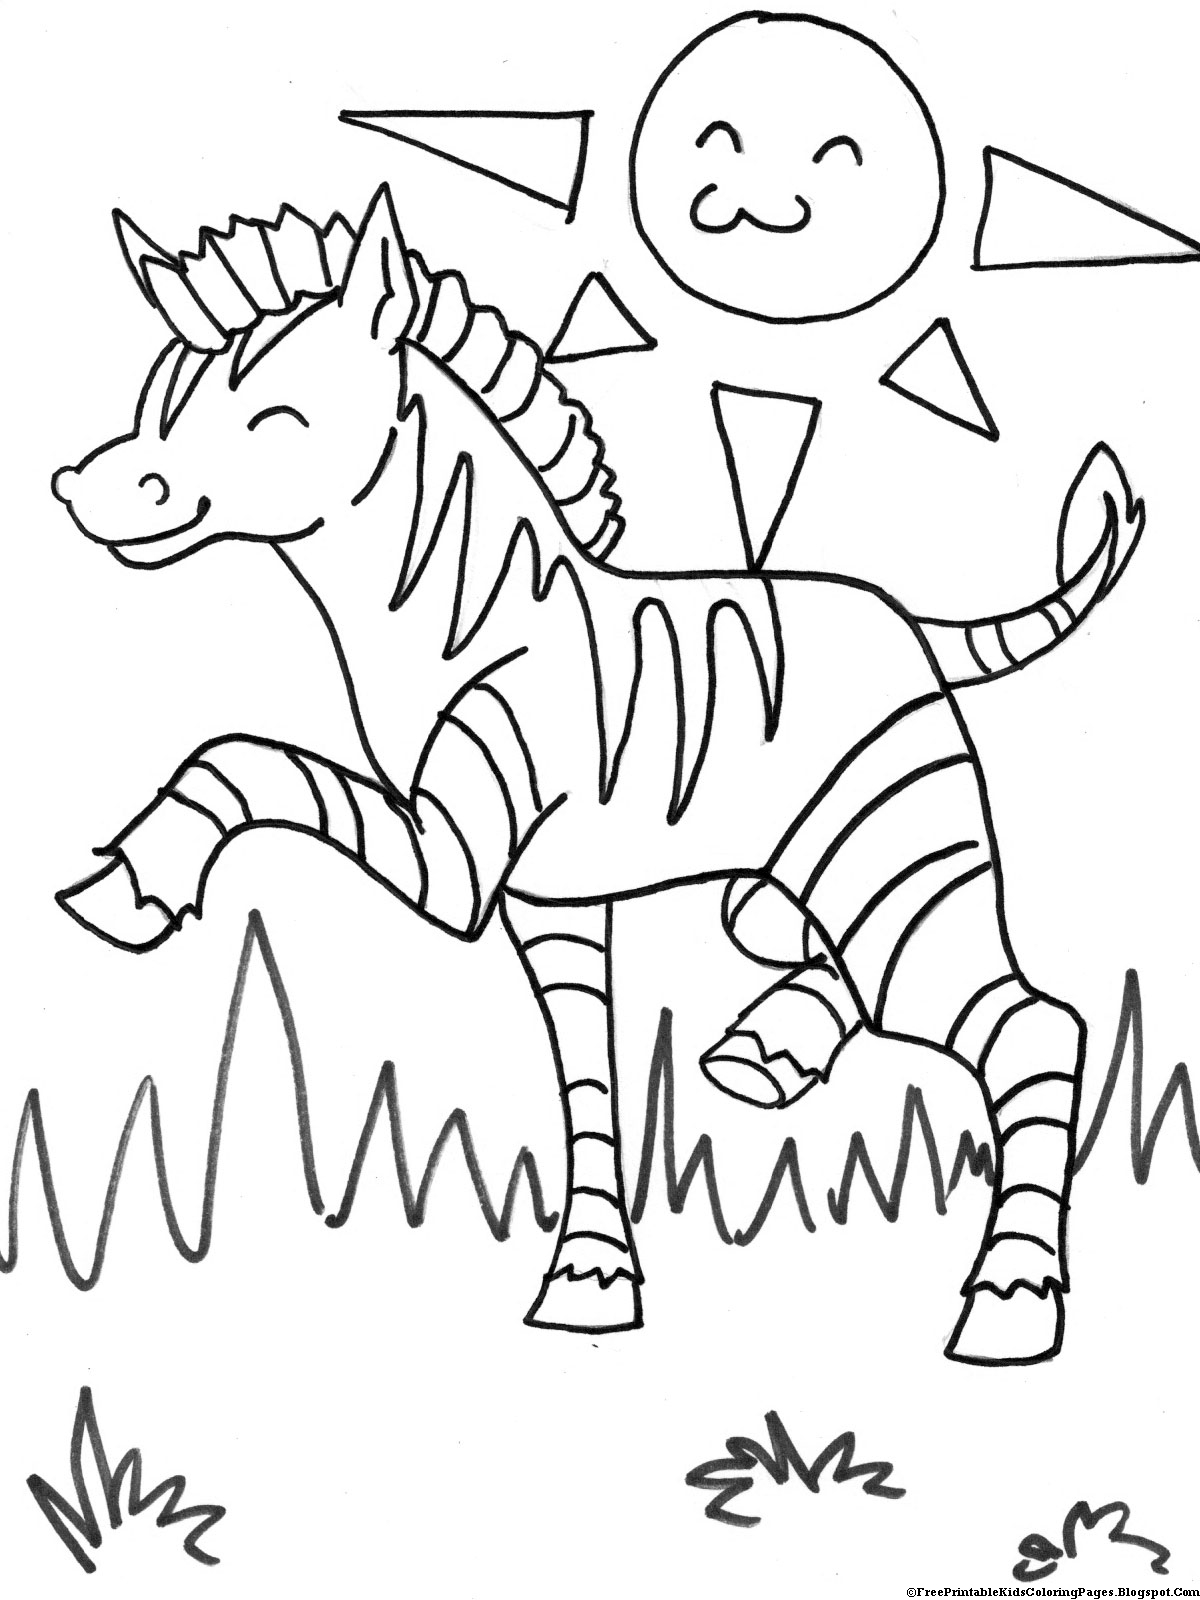 zoo animals coloring pages zebra - photo#8